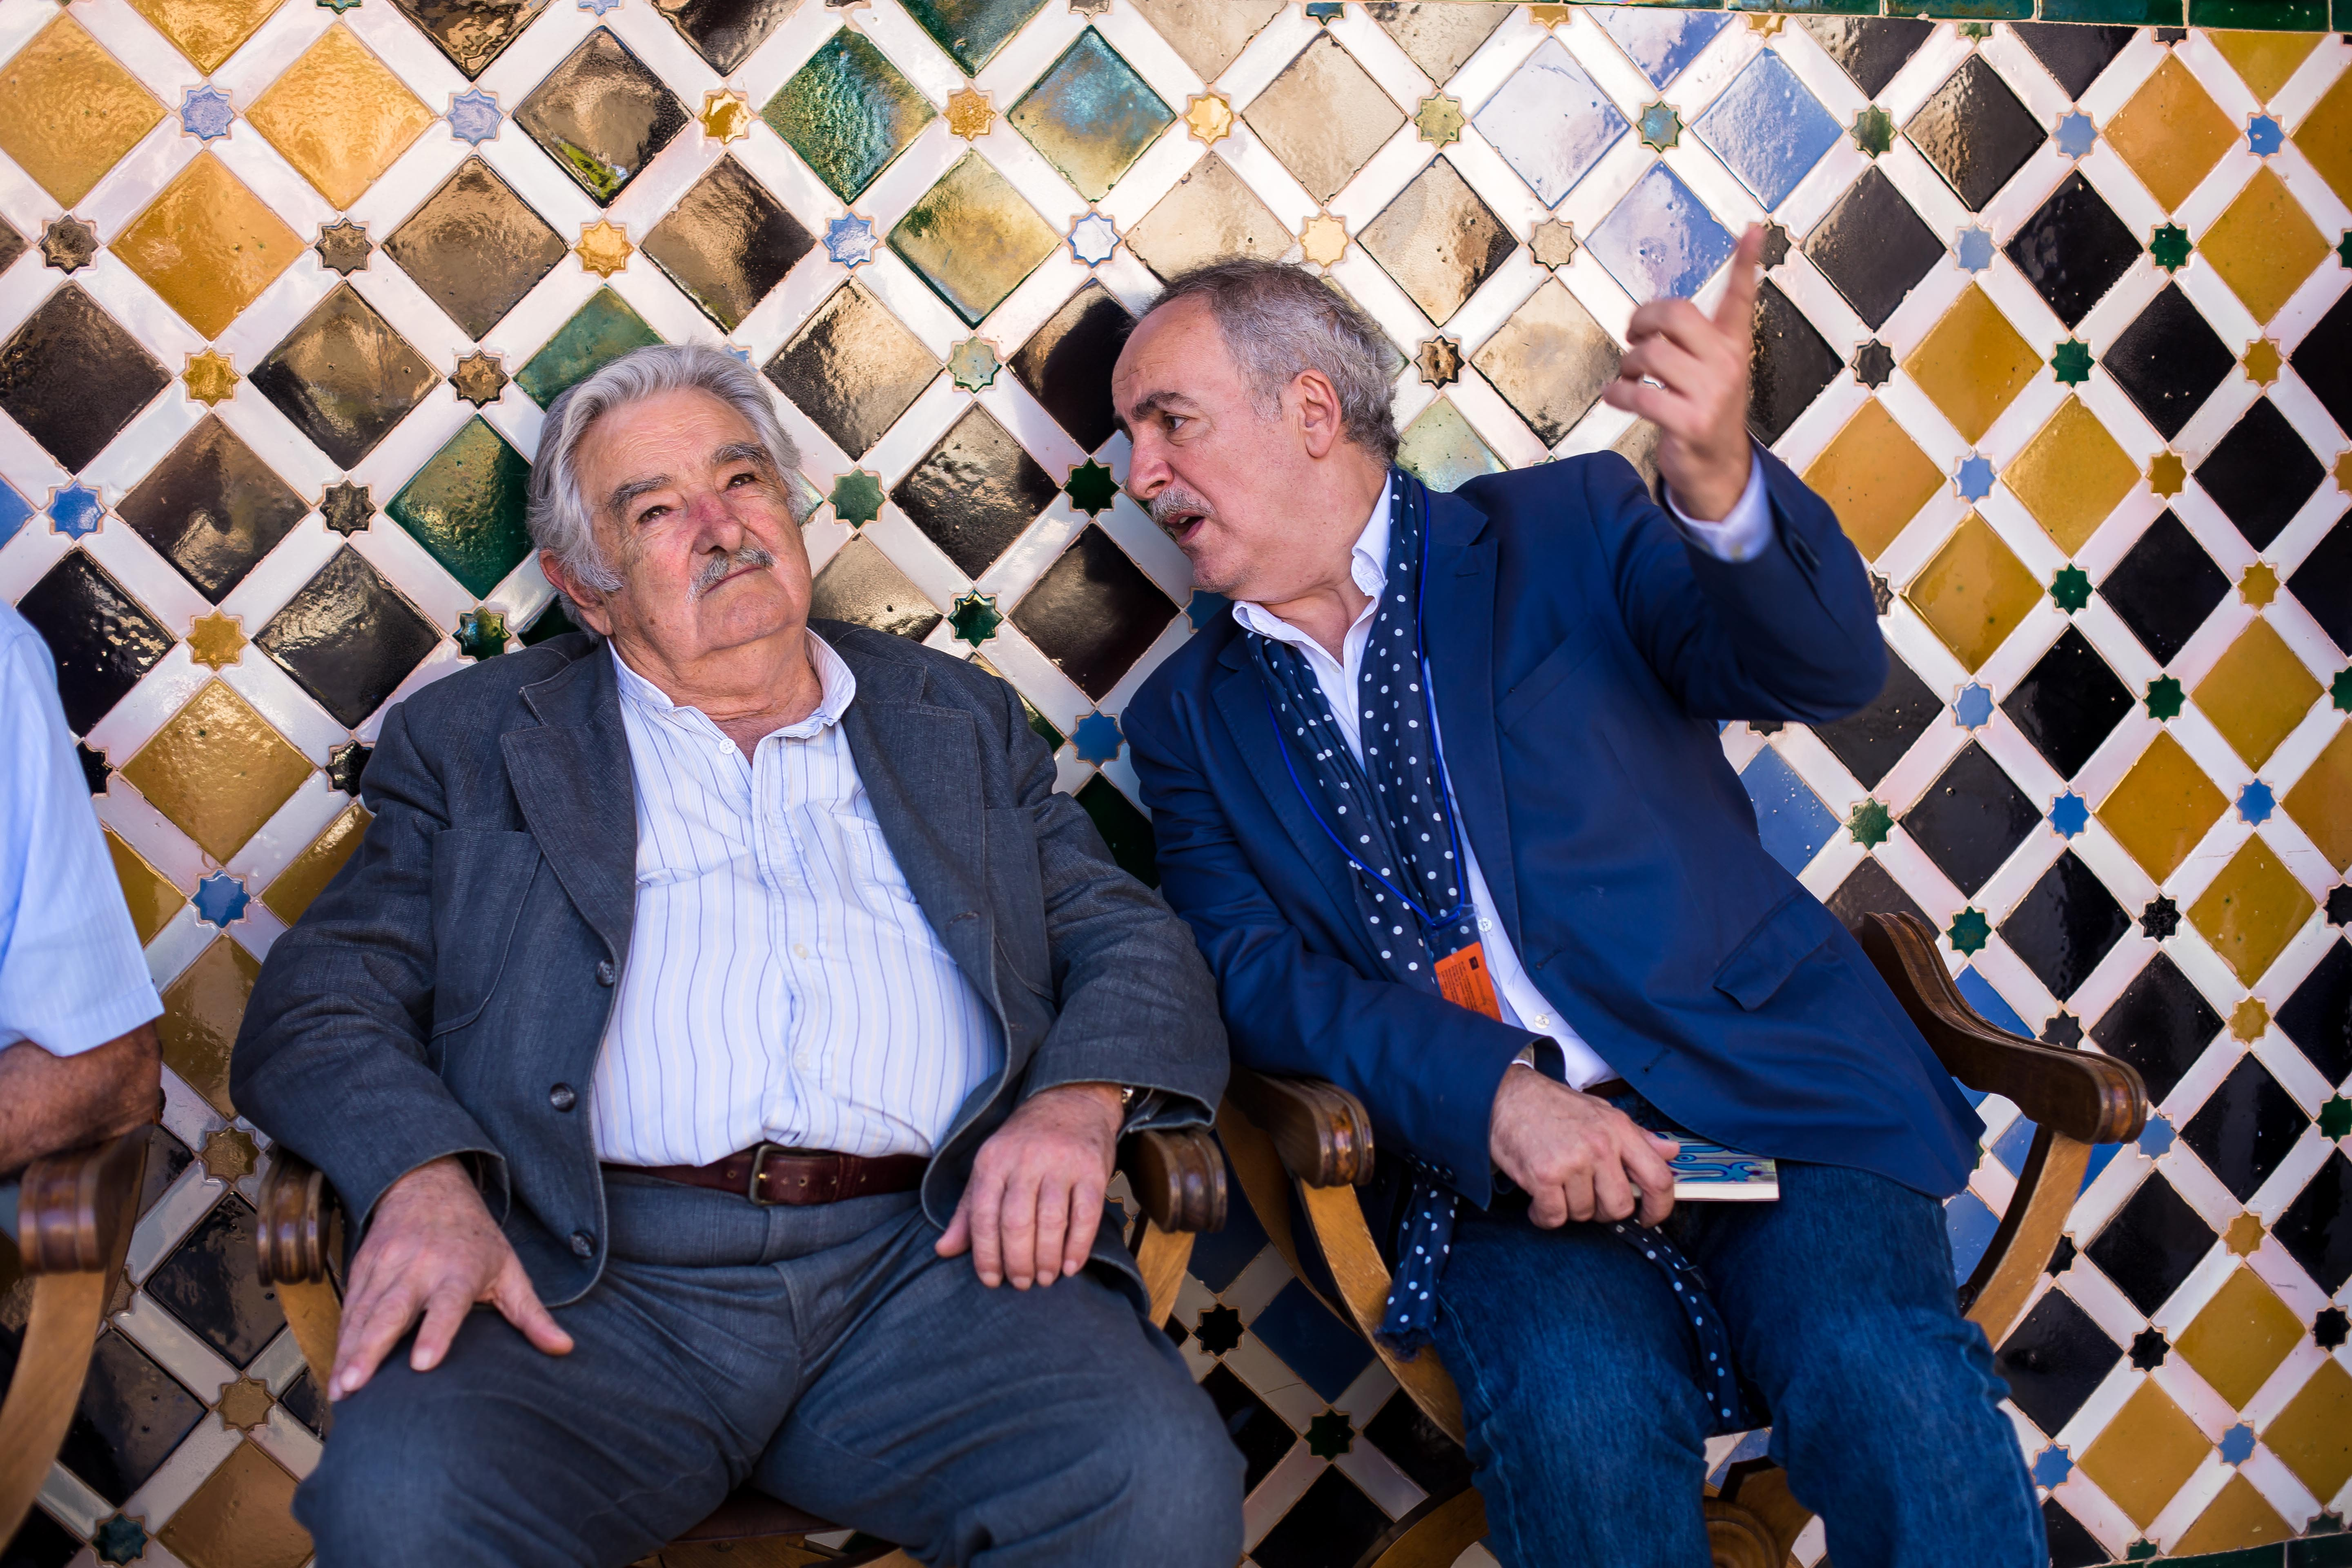 The Alhambra fascinates José Mujica, the ex-President of Uruguay